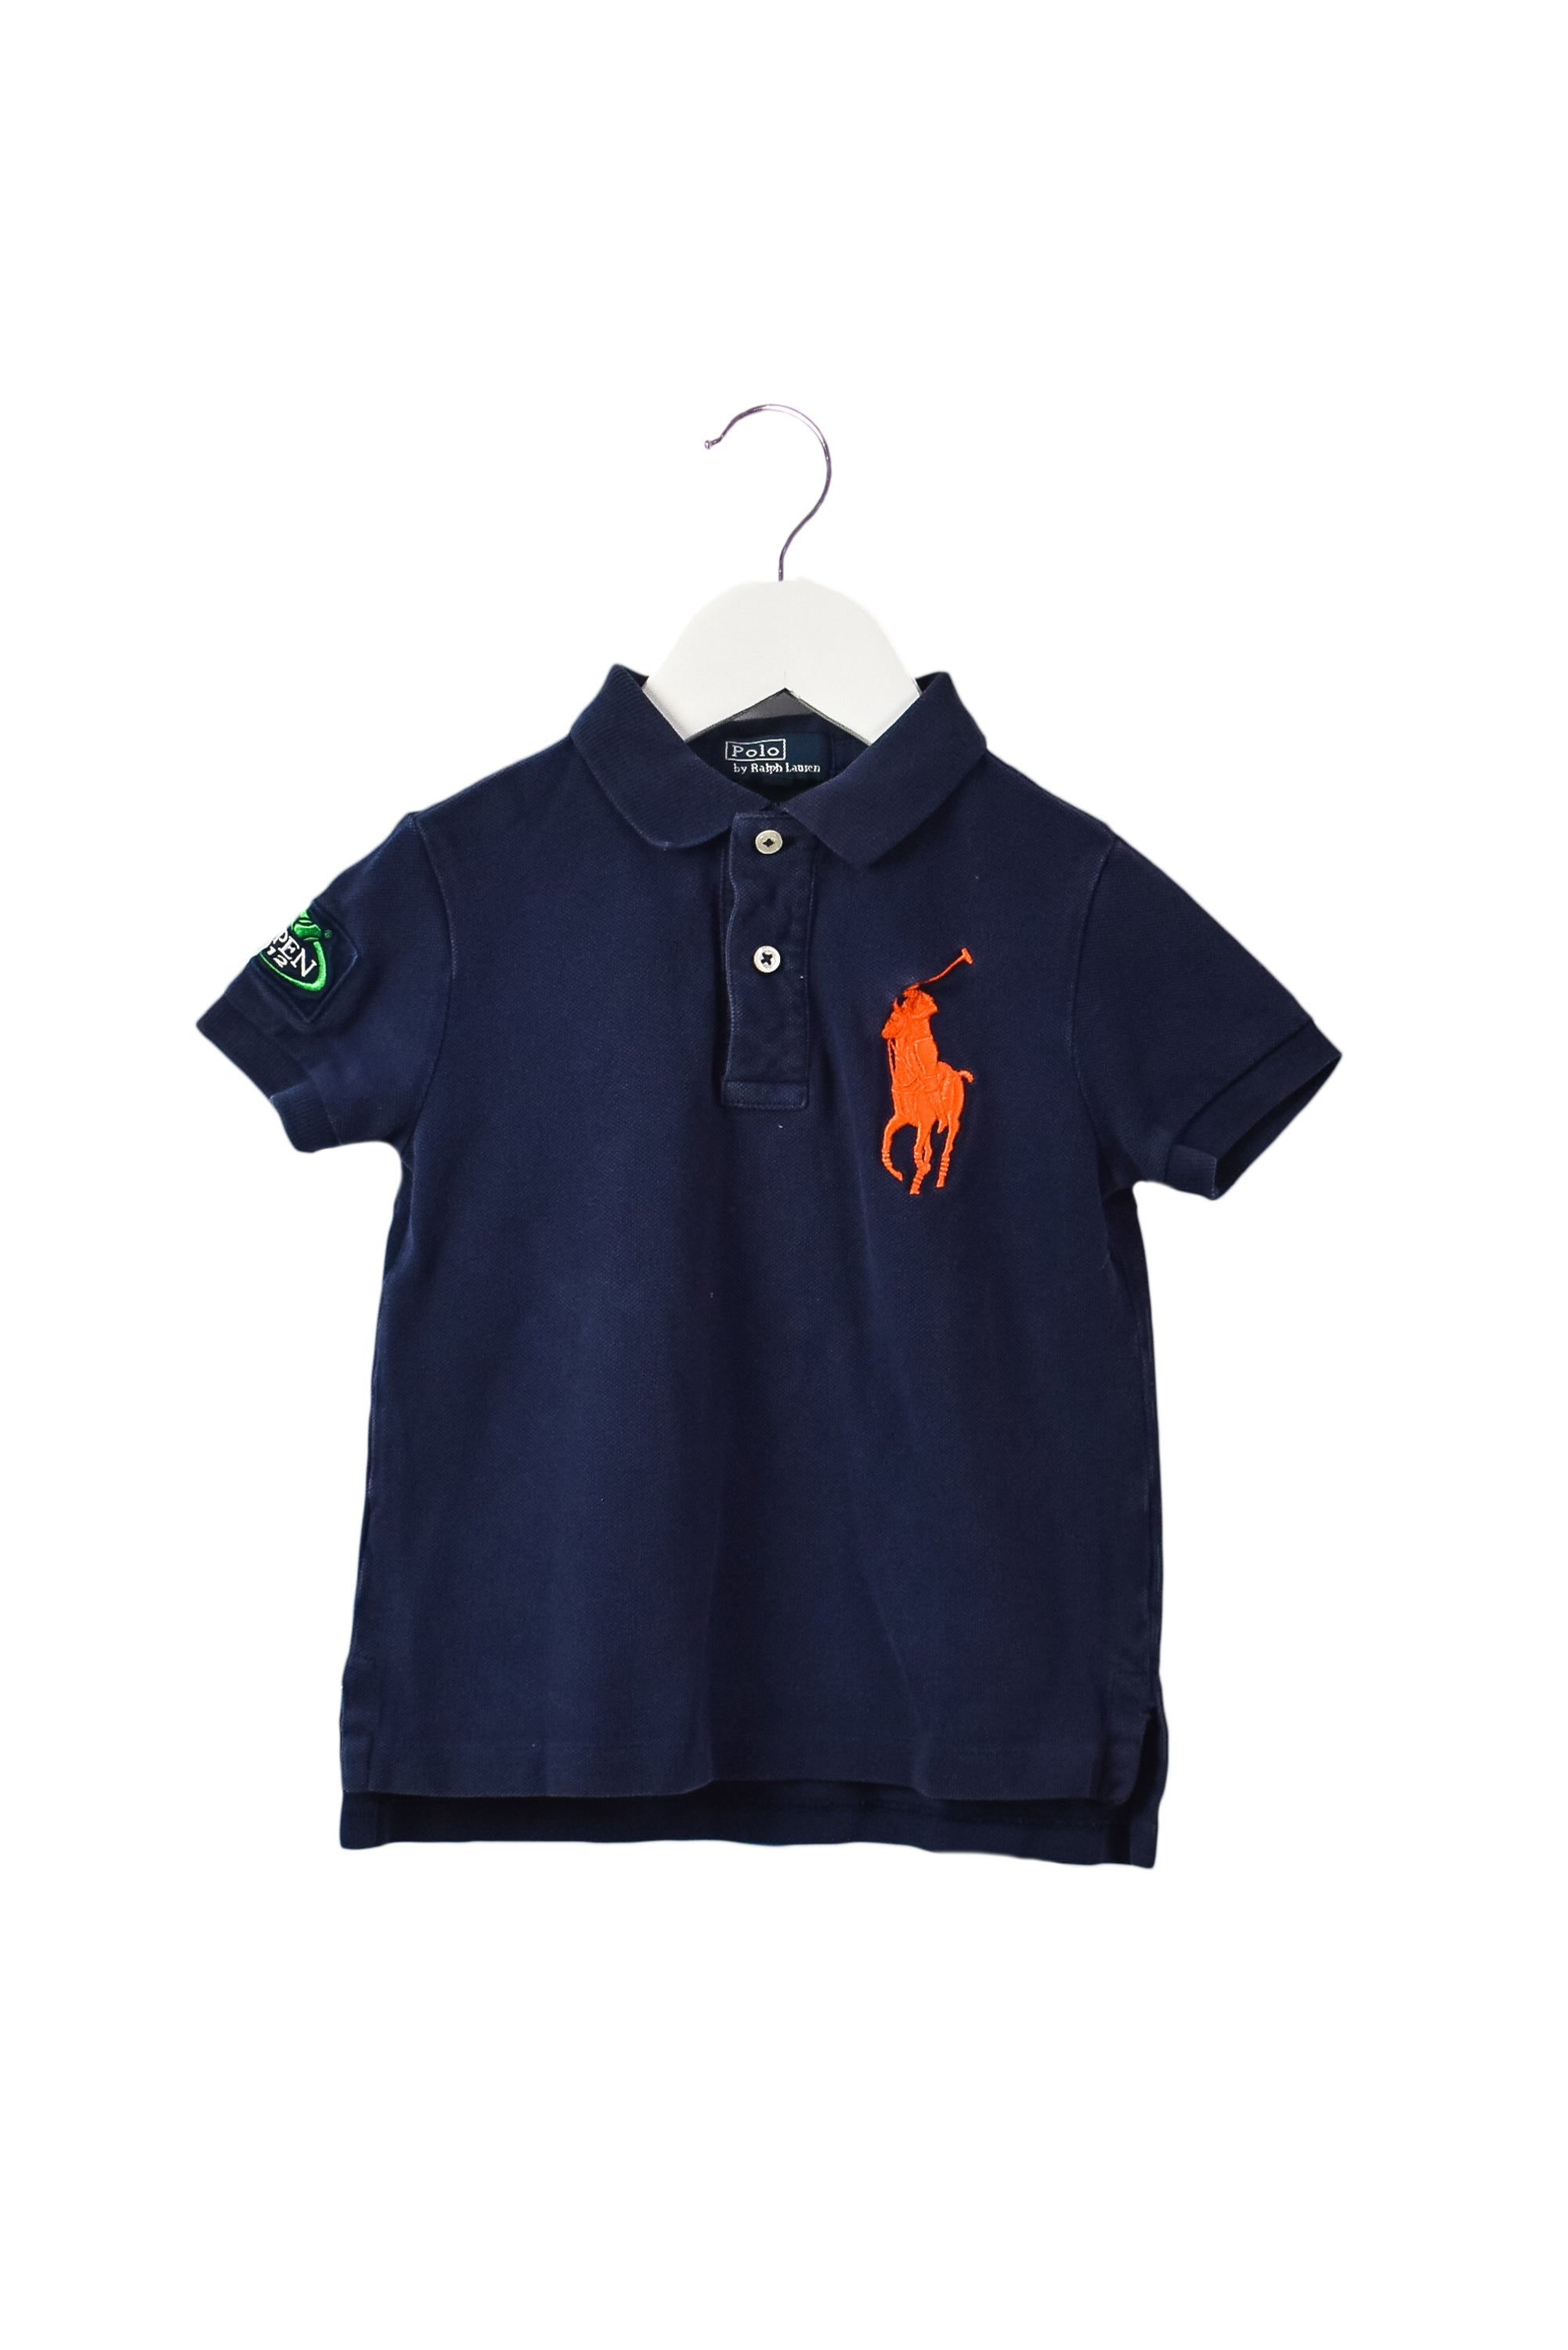 10033551 Polo Ralph Lauren Kids~Polo 2T at Retykle